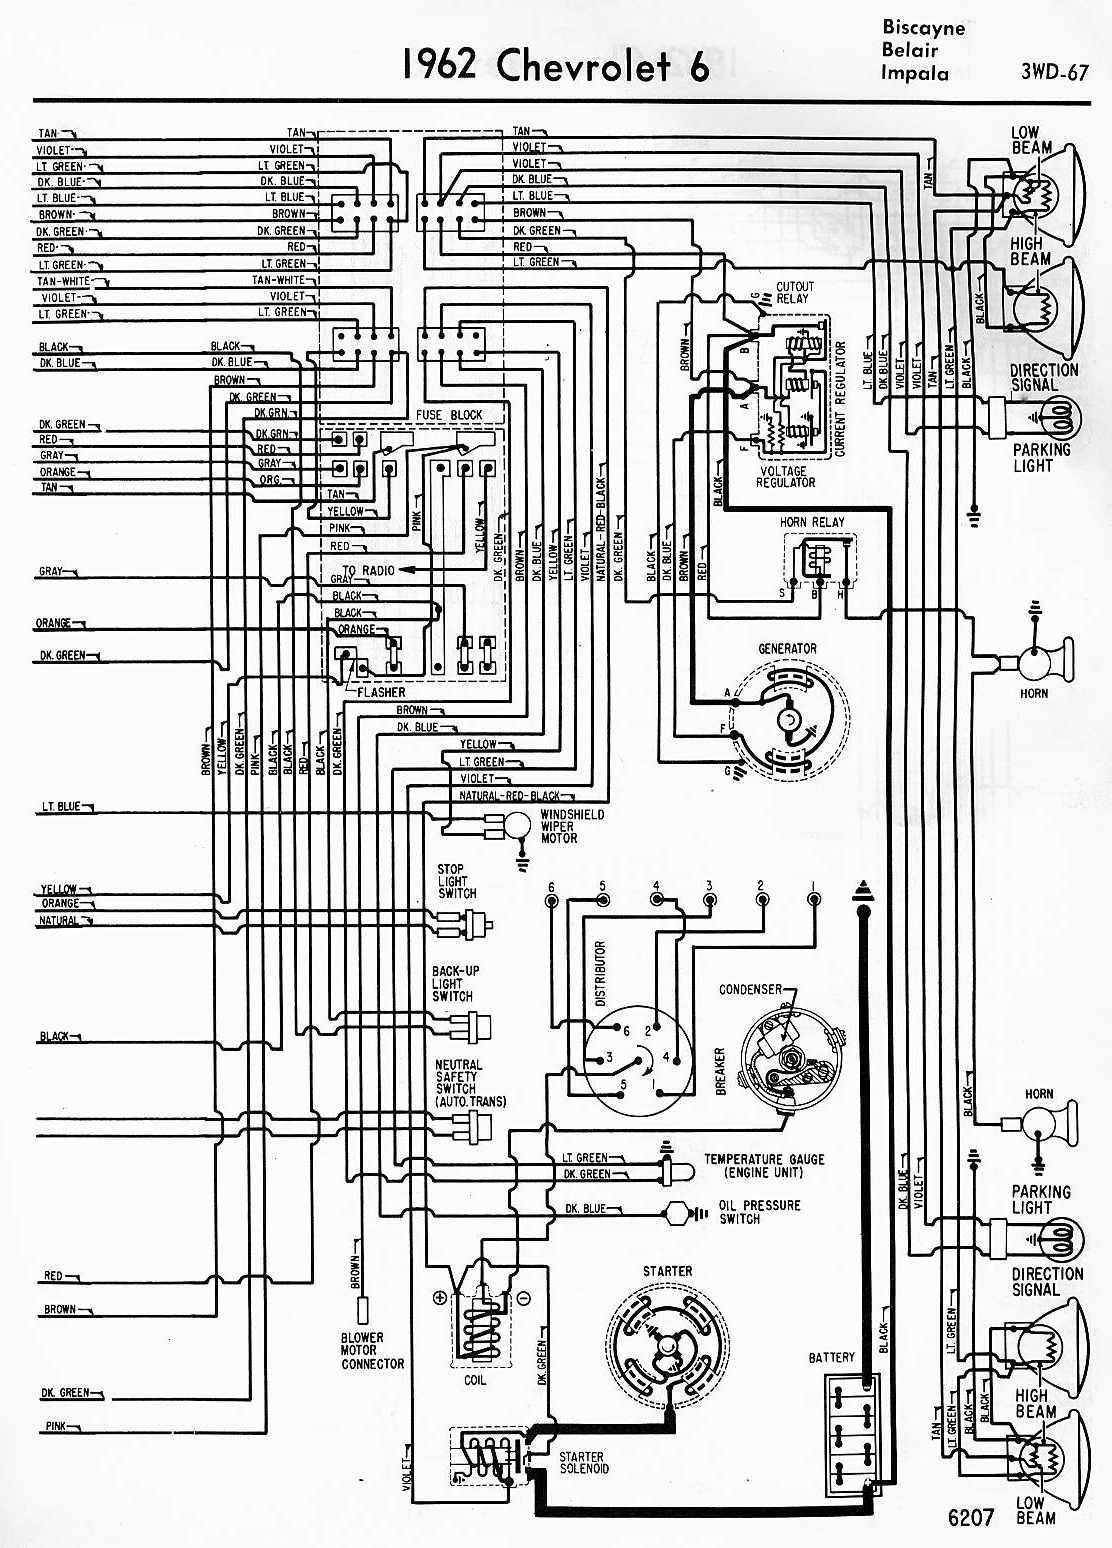 1969 Chevelle Wiring Fuse Box Data Diagrams Diagram Electrical Of 1962 Chevrolet 6 All About Chevy Heater Assembly